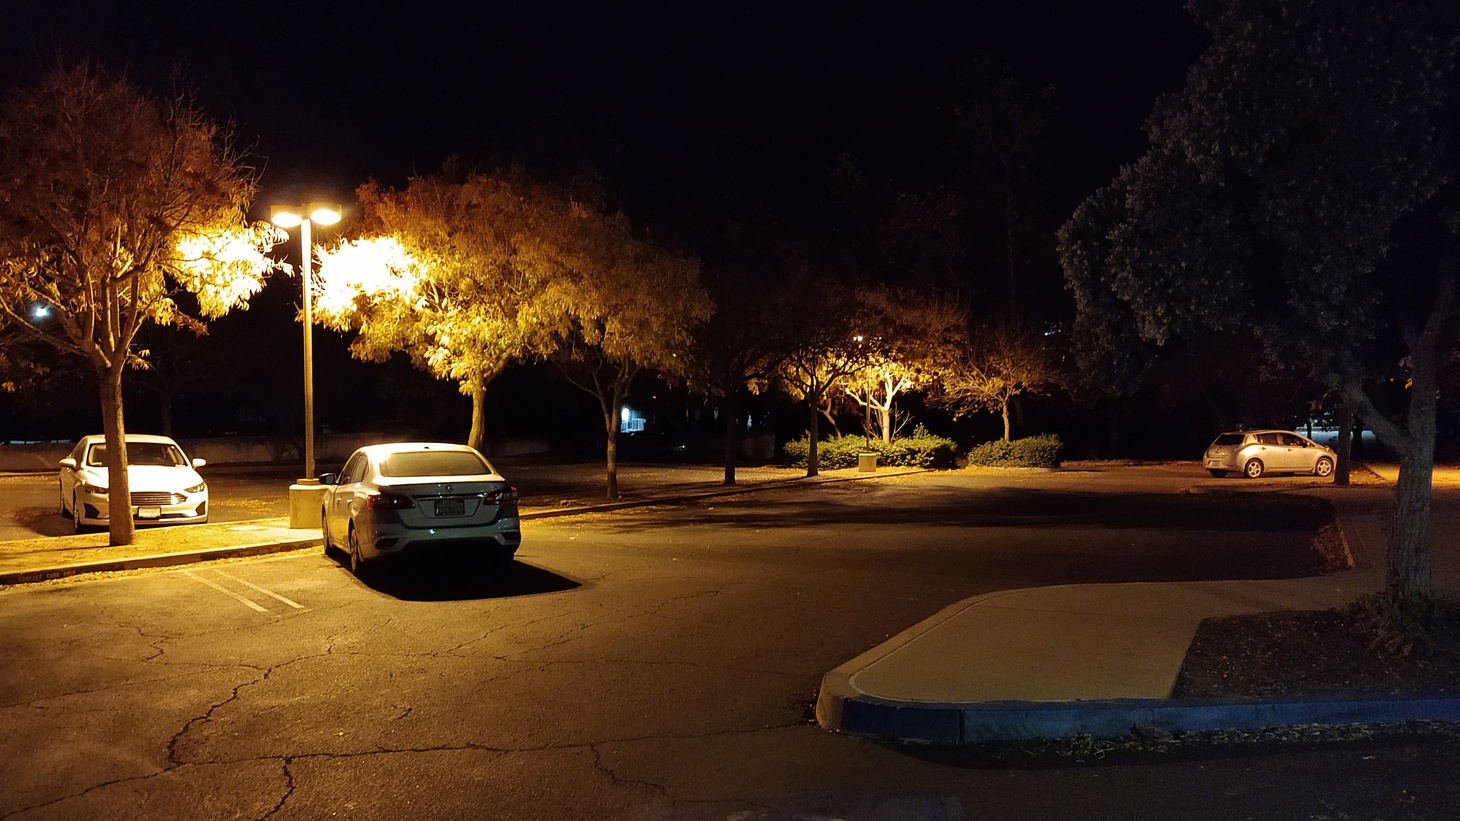 Santa Barbara's Safe Parking Program currently manages 154 spaces in 26 parking lots throughout Santa Barbara, Goleta, and unincorporated areas of the county.